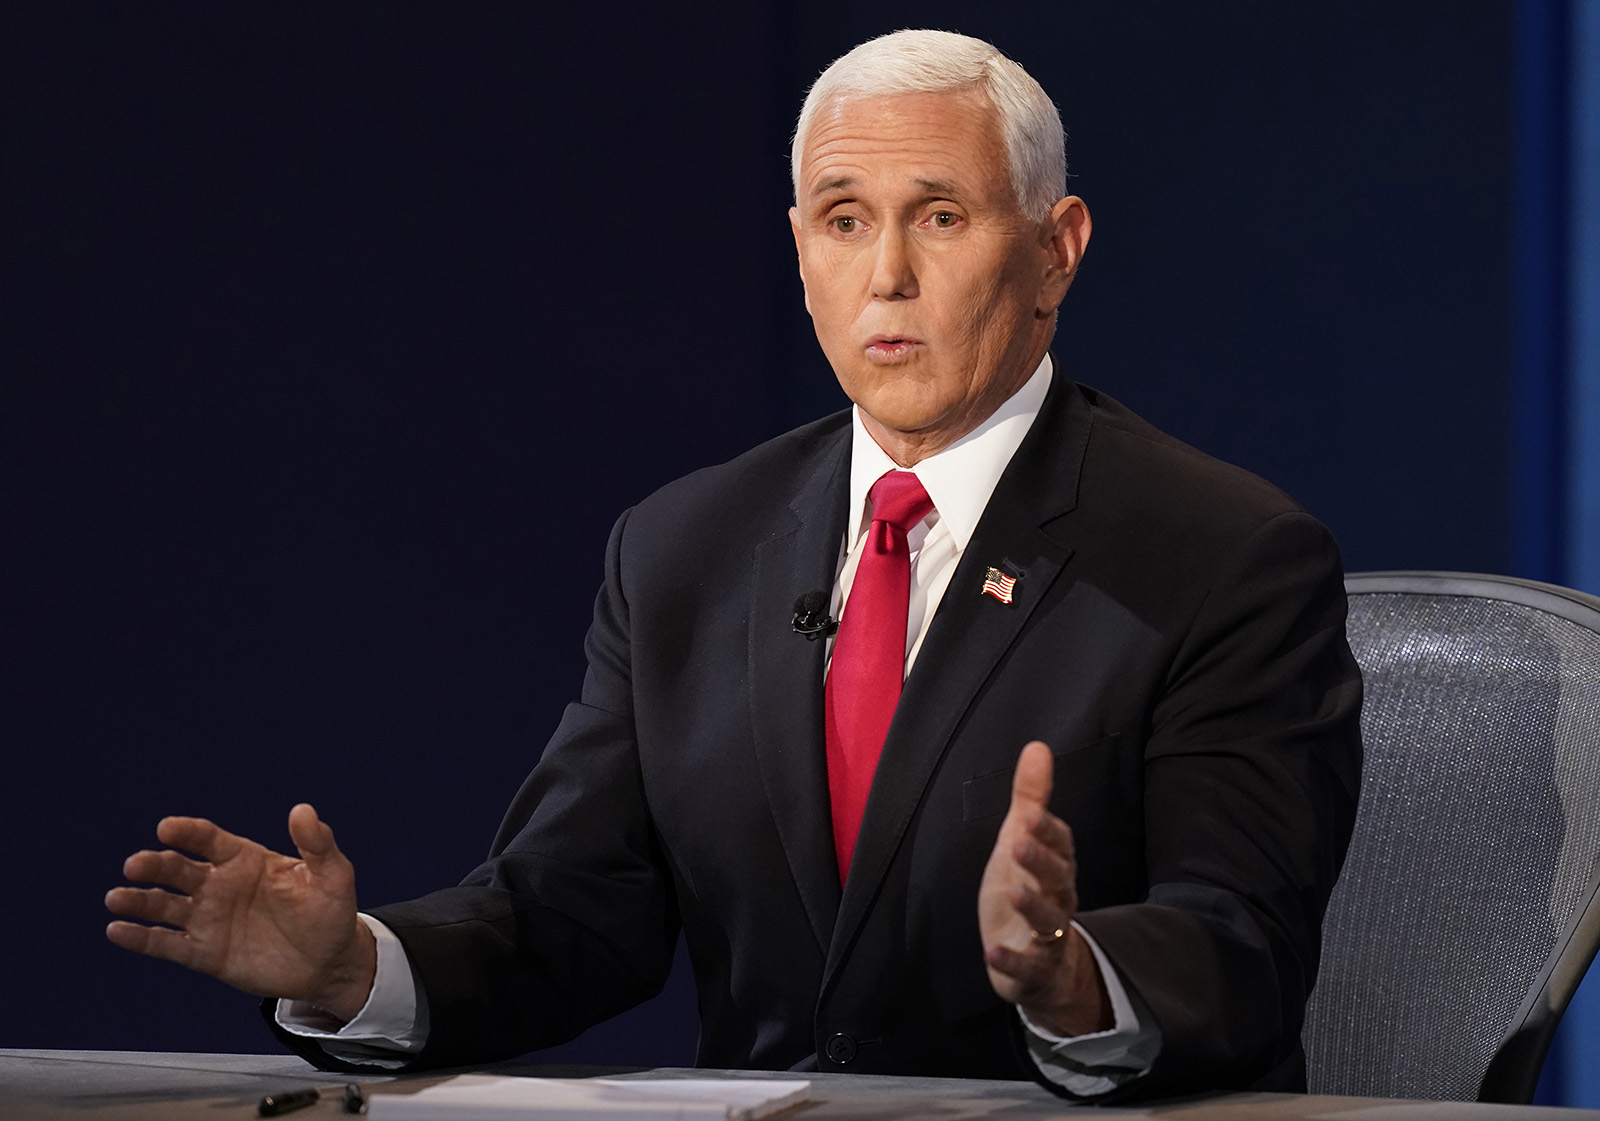 Vice President Mike Pence responds to a question during the vice presidential debate with Democratic vice presidential candidate Sen. Kamala Harris on Wednesday in Salt Lake City.